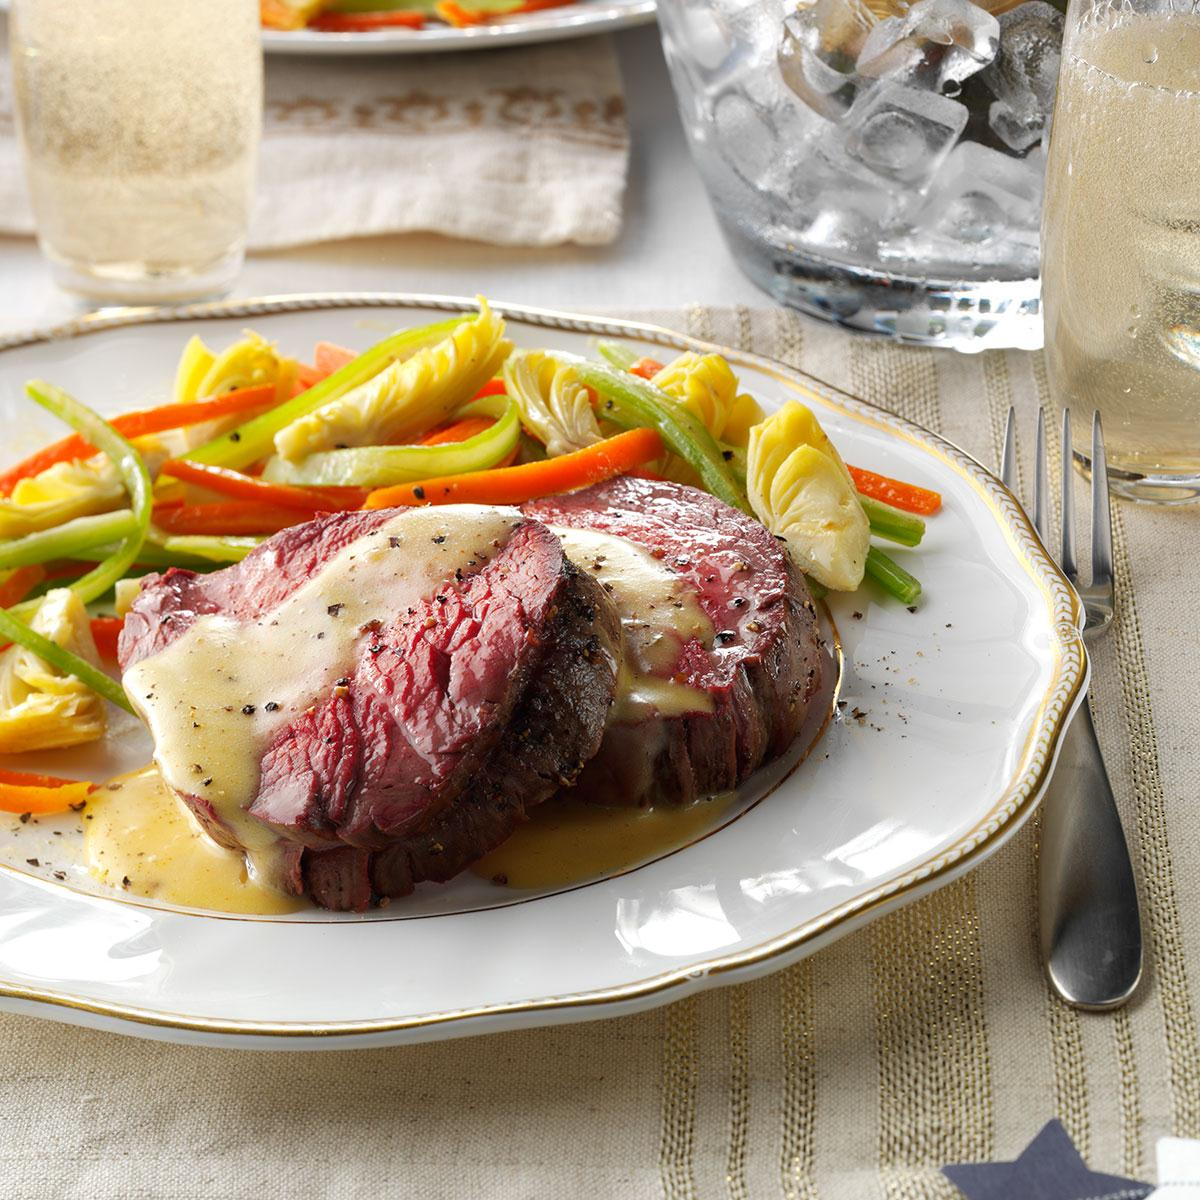 5 Simple Spring Meals On The Grill: Beef Tenderloin With Sauteed Vegetables Recipe